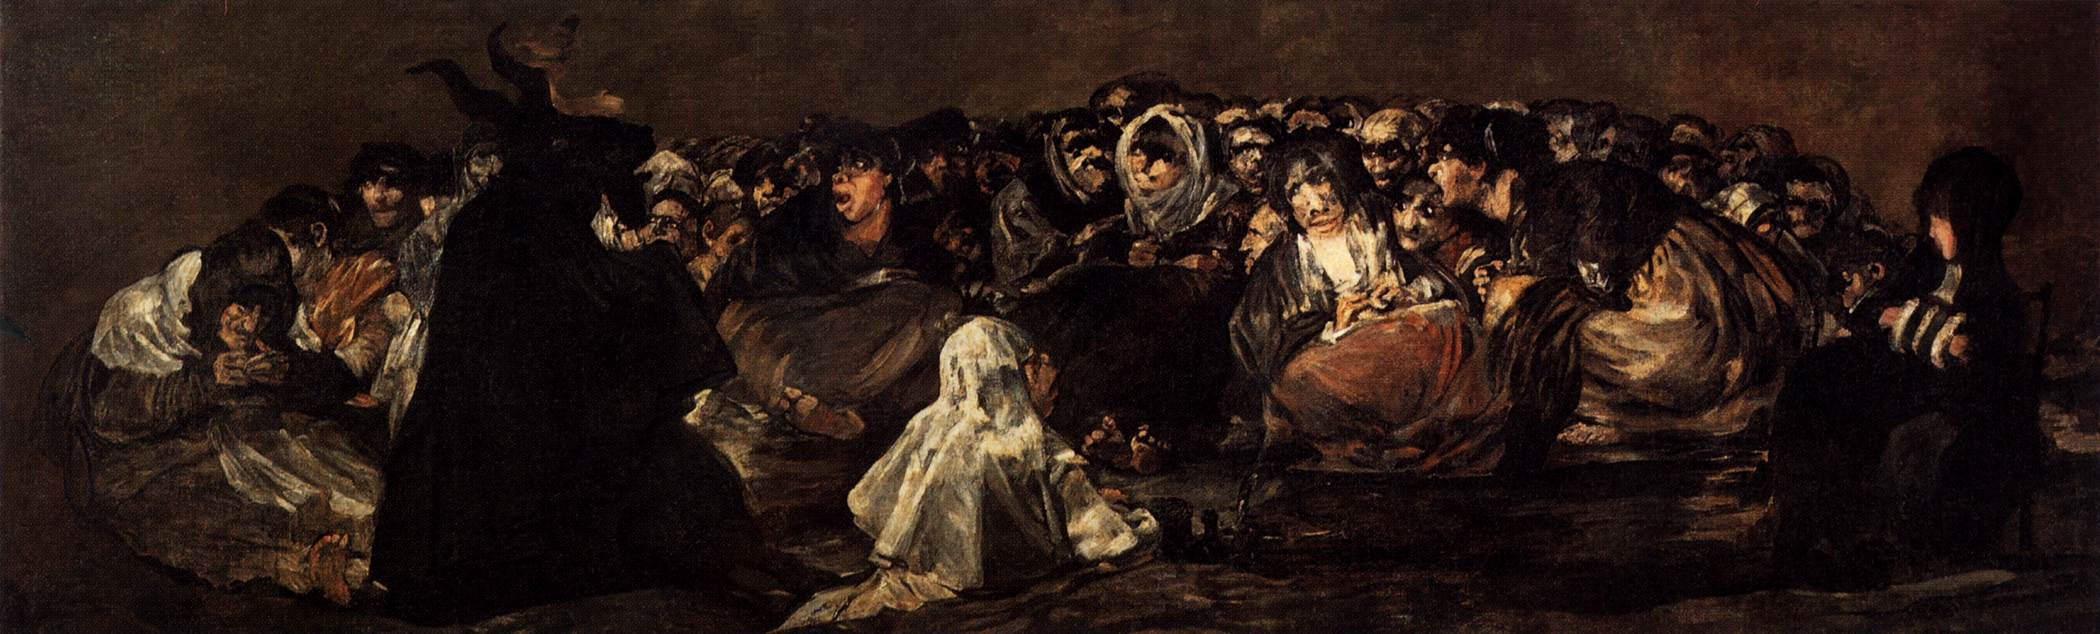 The Great He-Goat Or Witches Sabbath - Francisco Goya - WikiArt.org ...